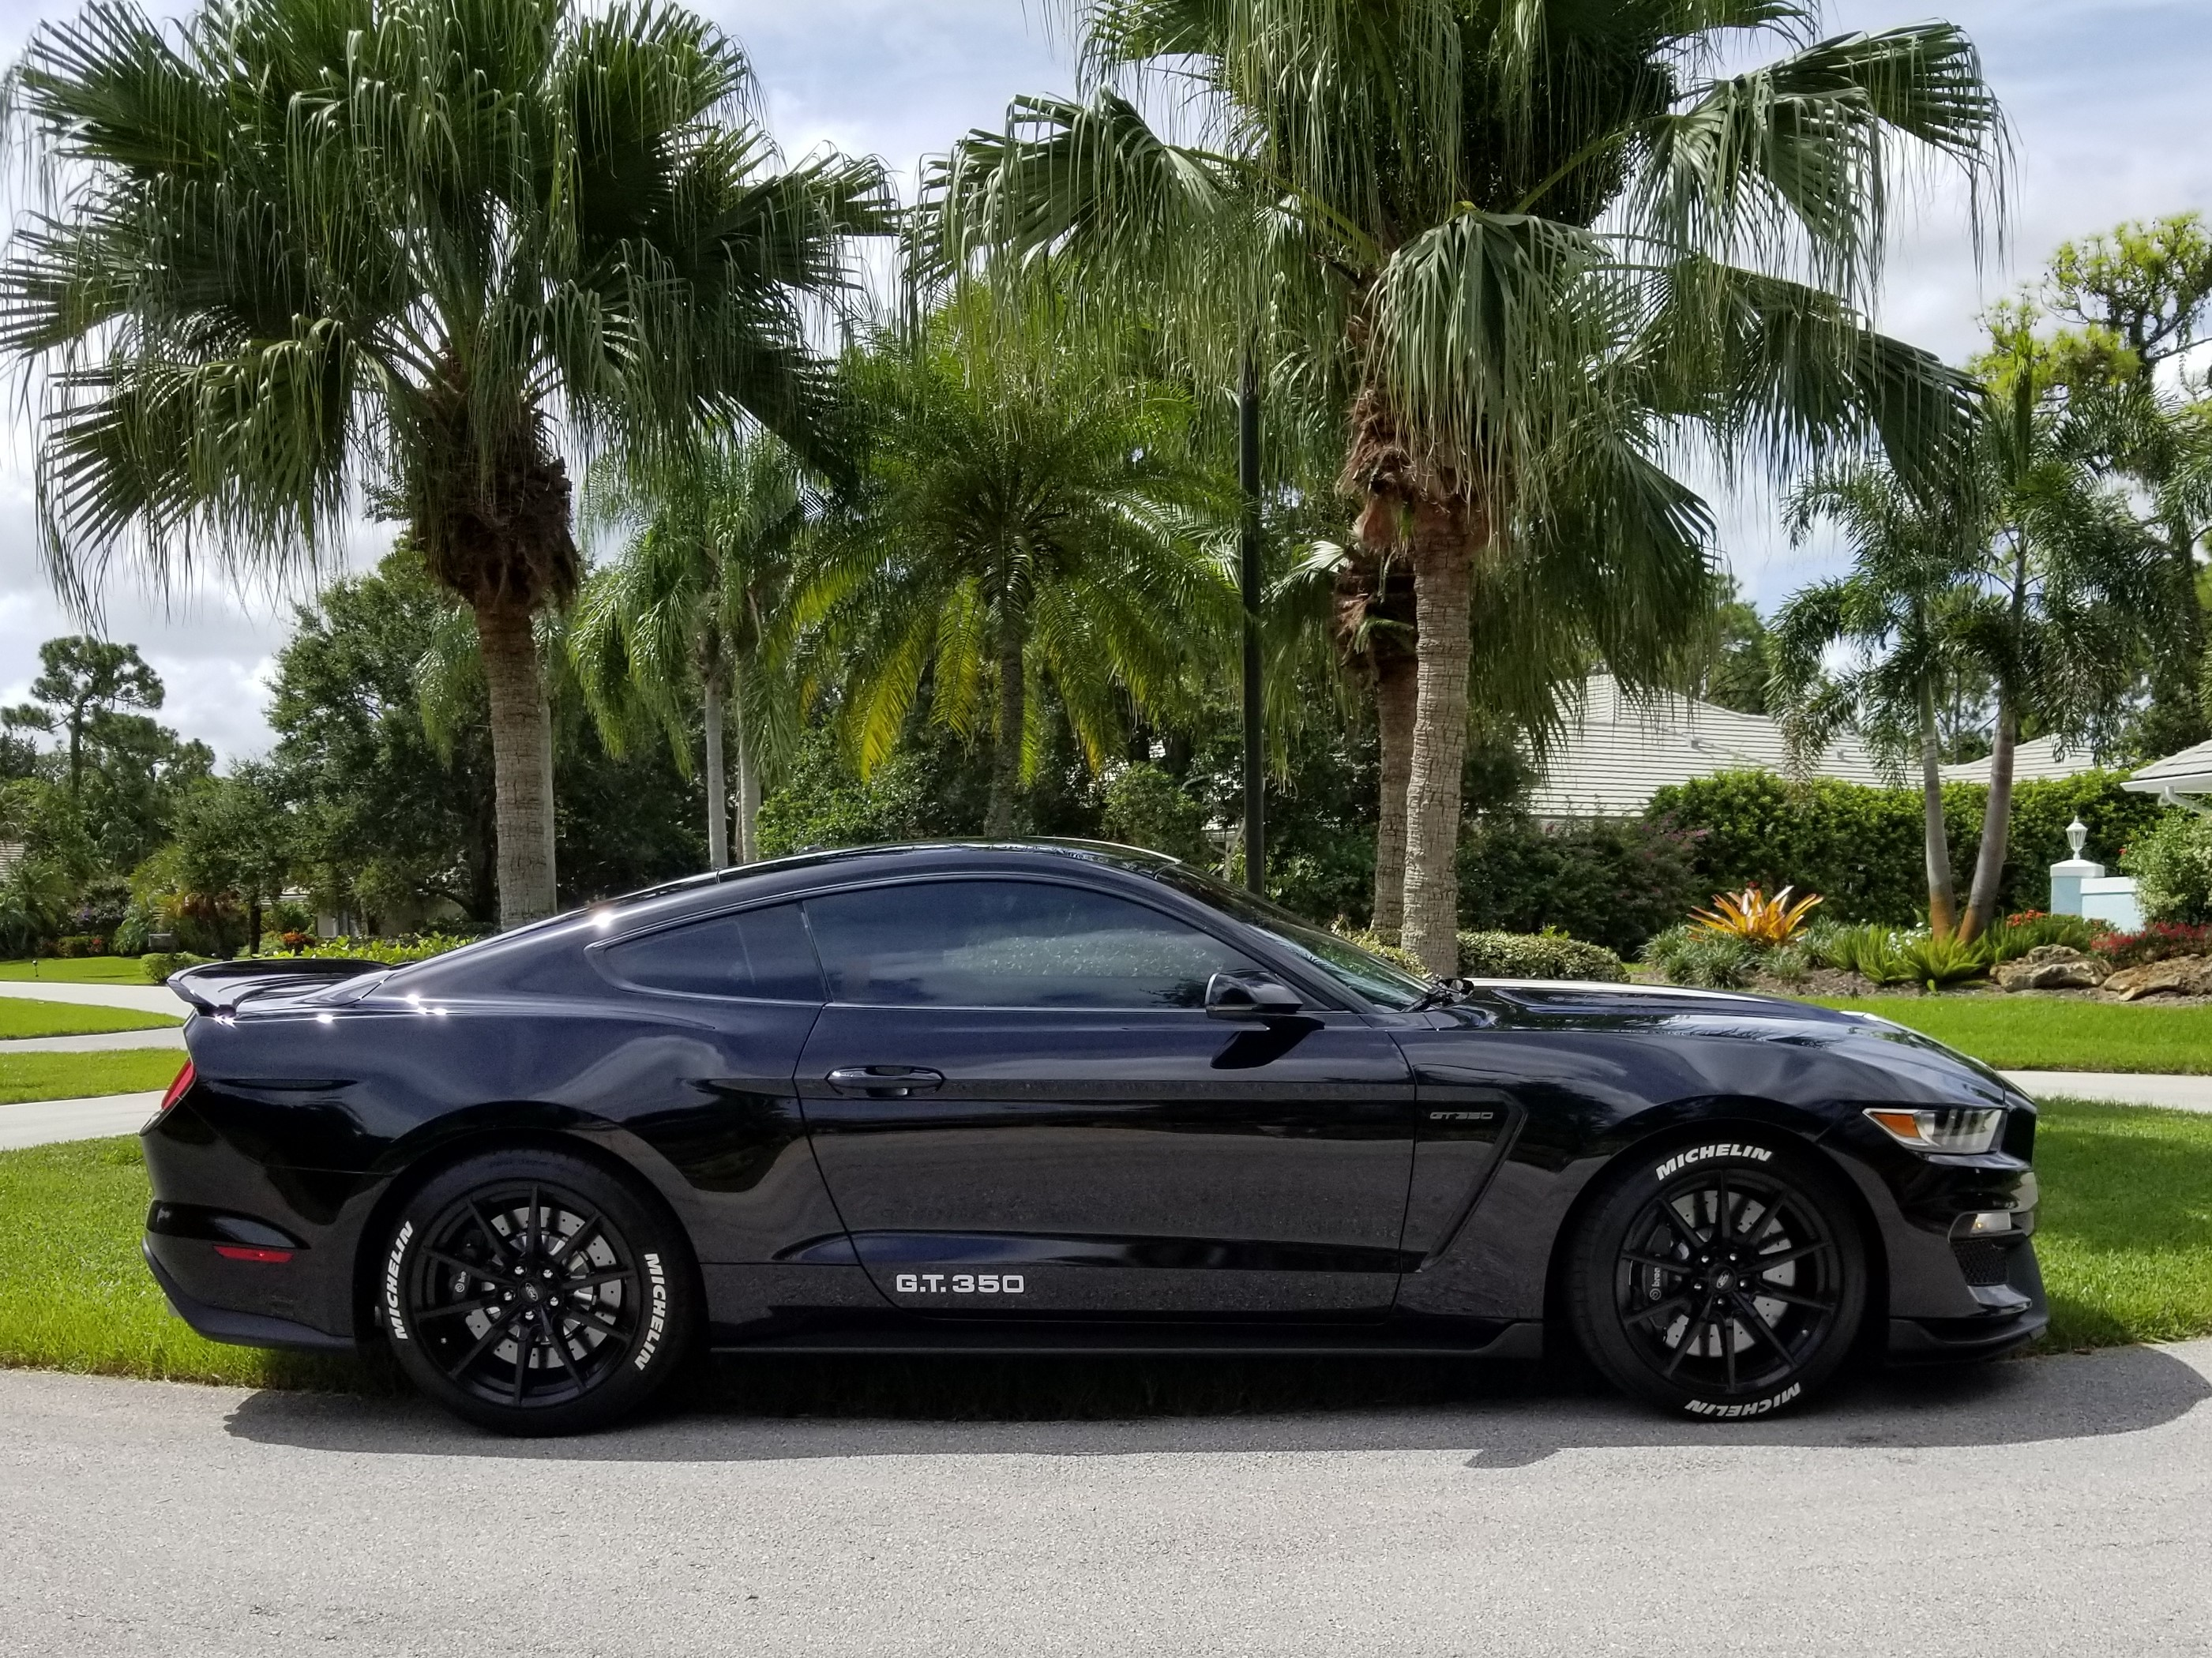 Shelby Gt350 Shadow Black Photos Page 2